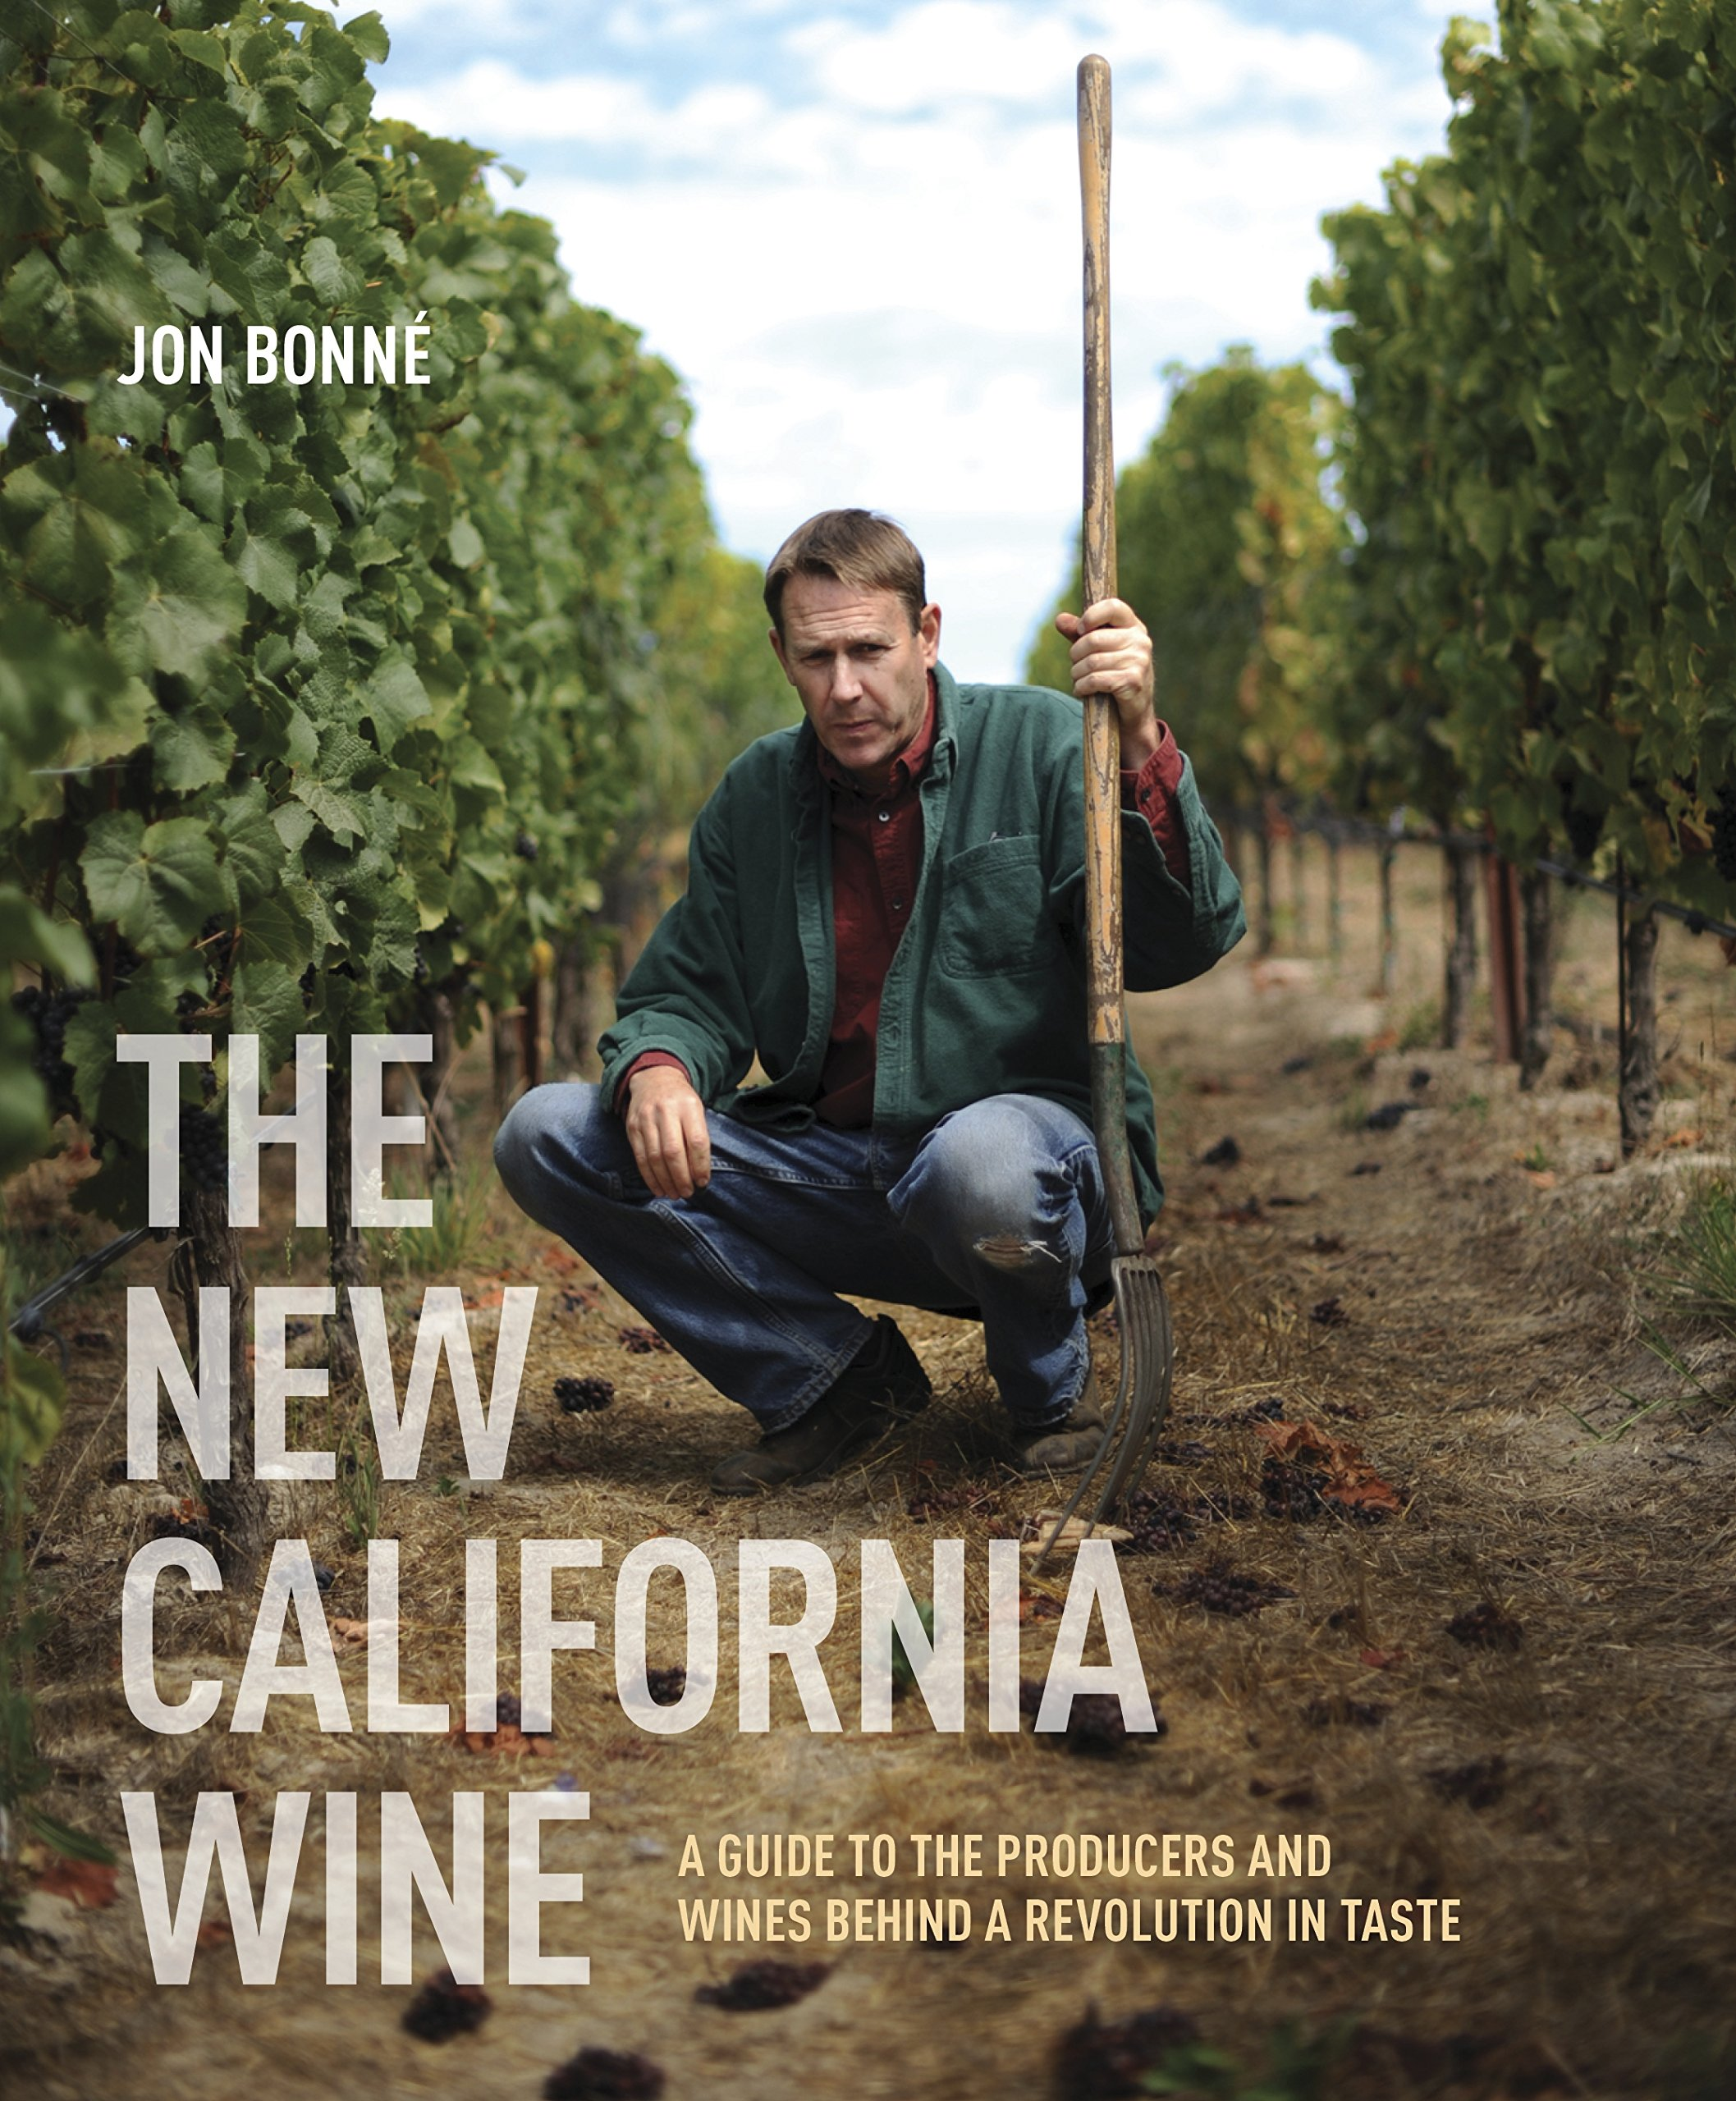 the-new-california-wine-a-guide-to-the-producers-and-wines-behind-a-revolution-in-taste